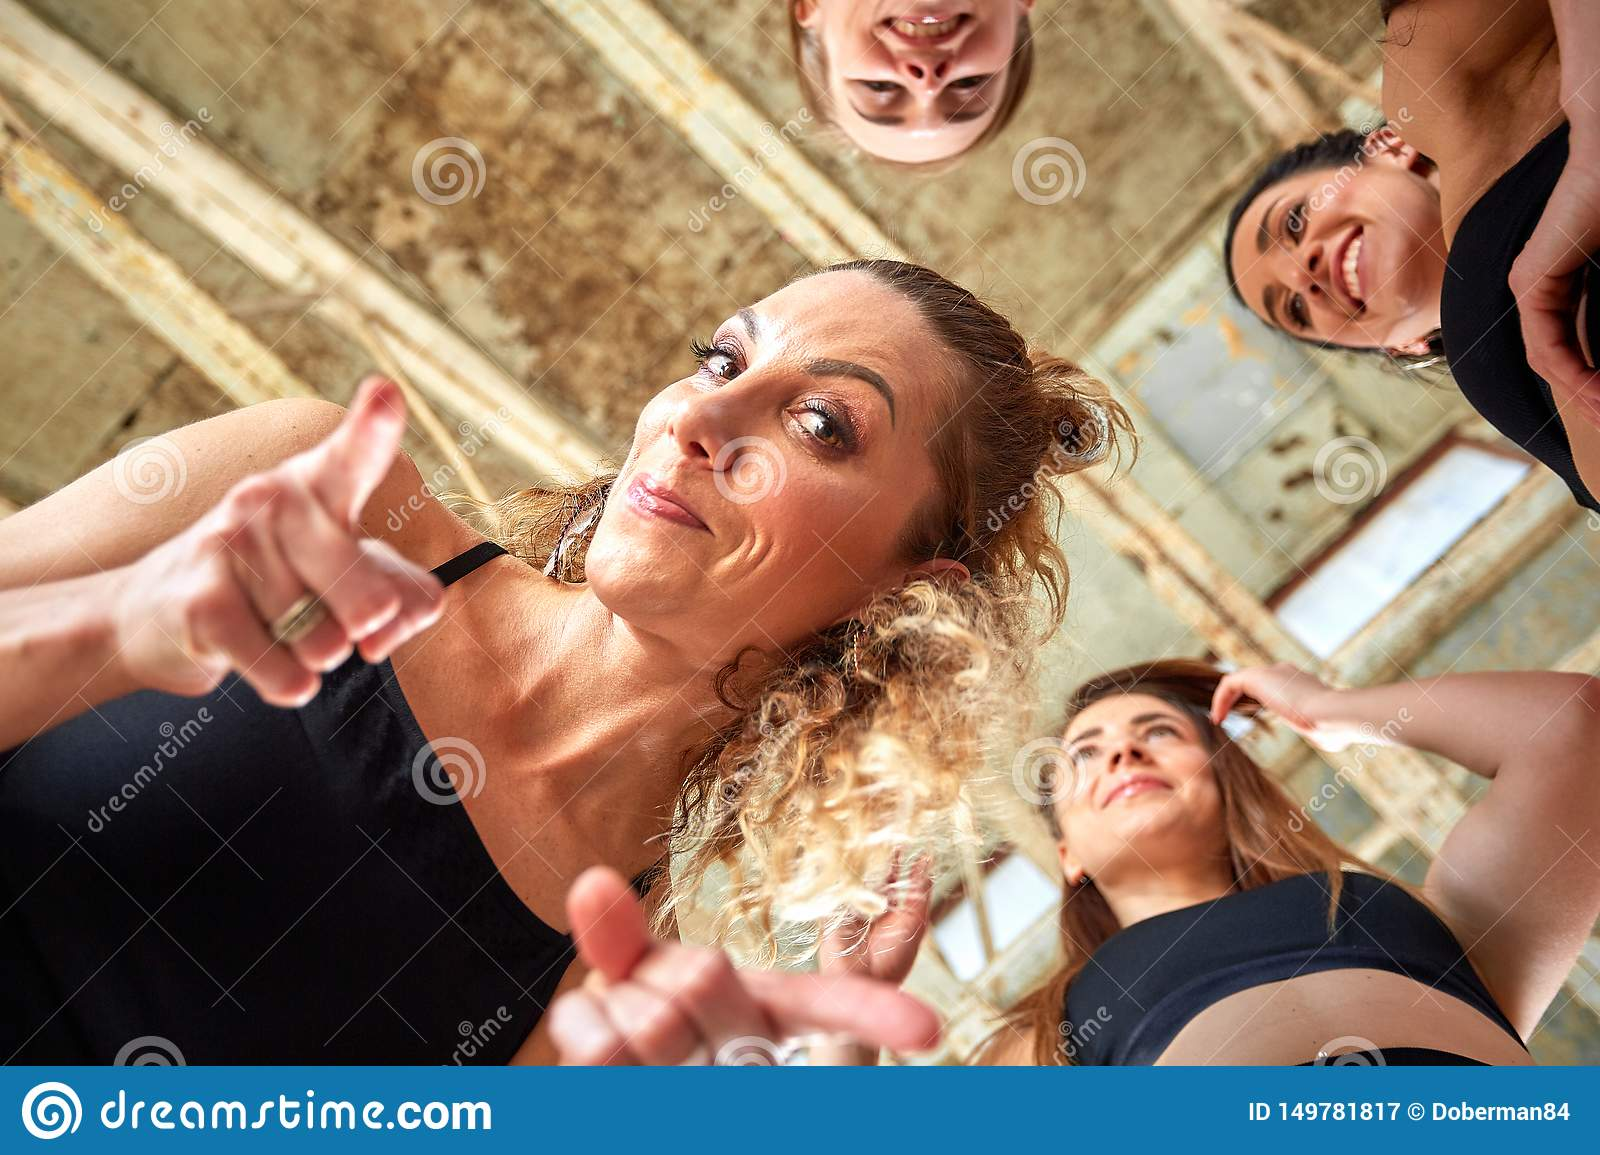 Diverse funny girls together in circle on rubber mats wearing sportswear smiling show yoga greeting gesture, looking at